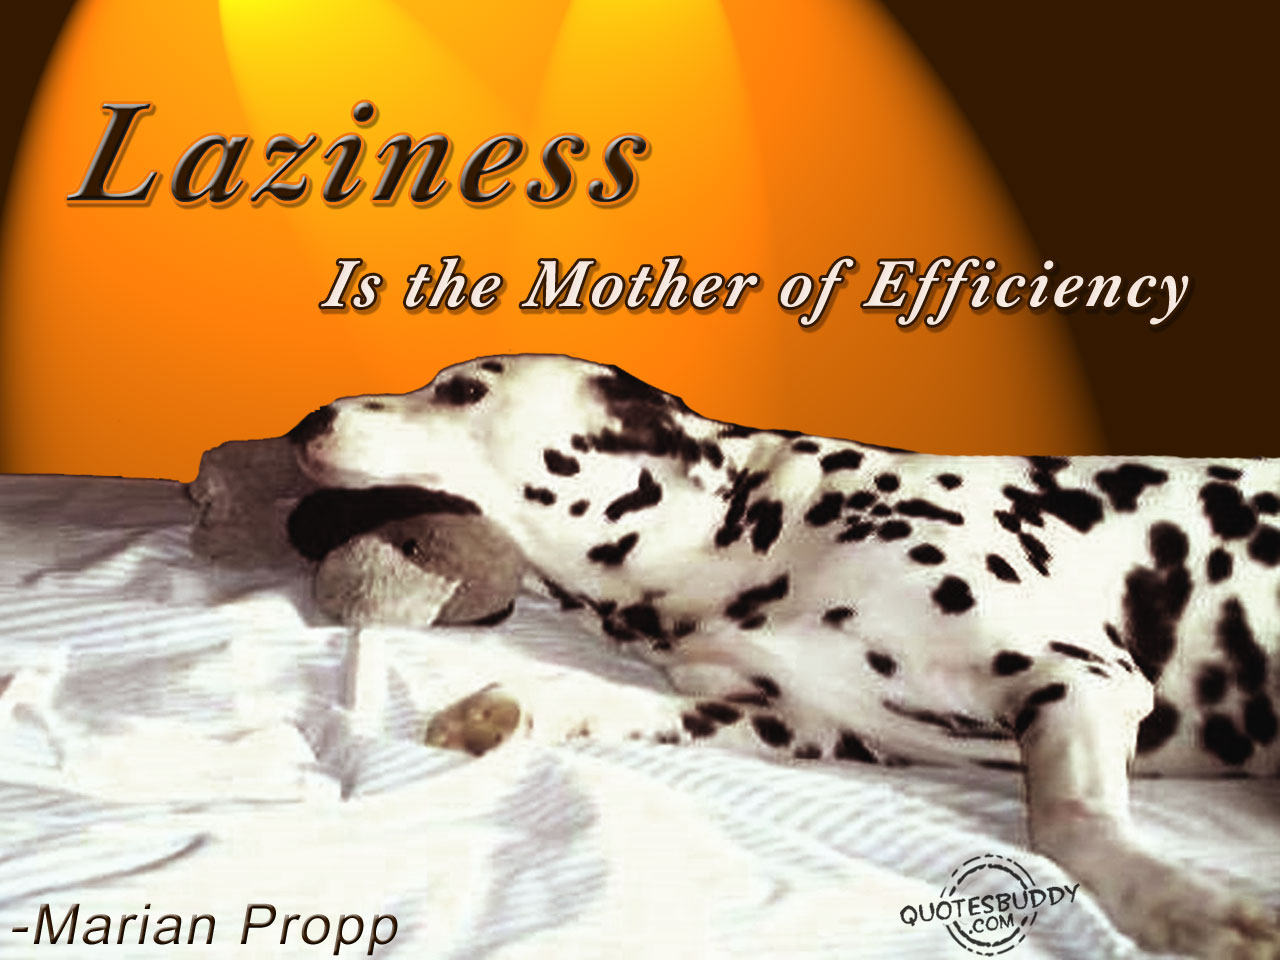 magazines time laziness quotes inspirational sayings